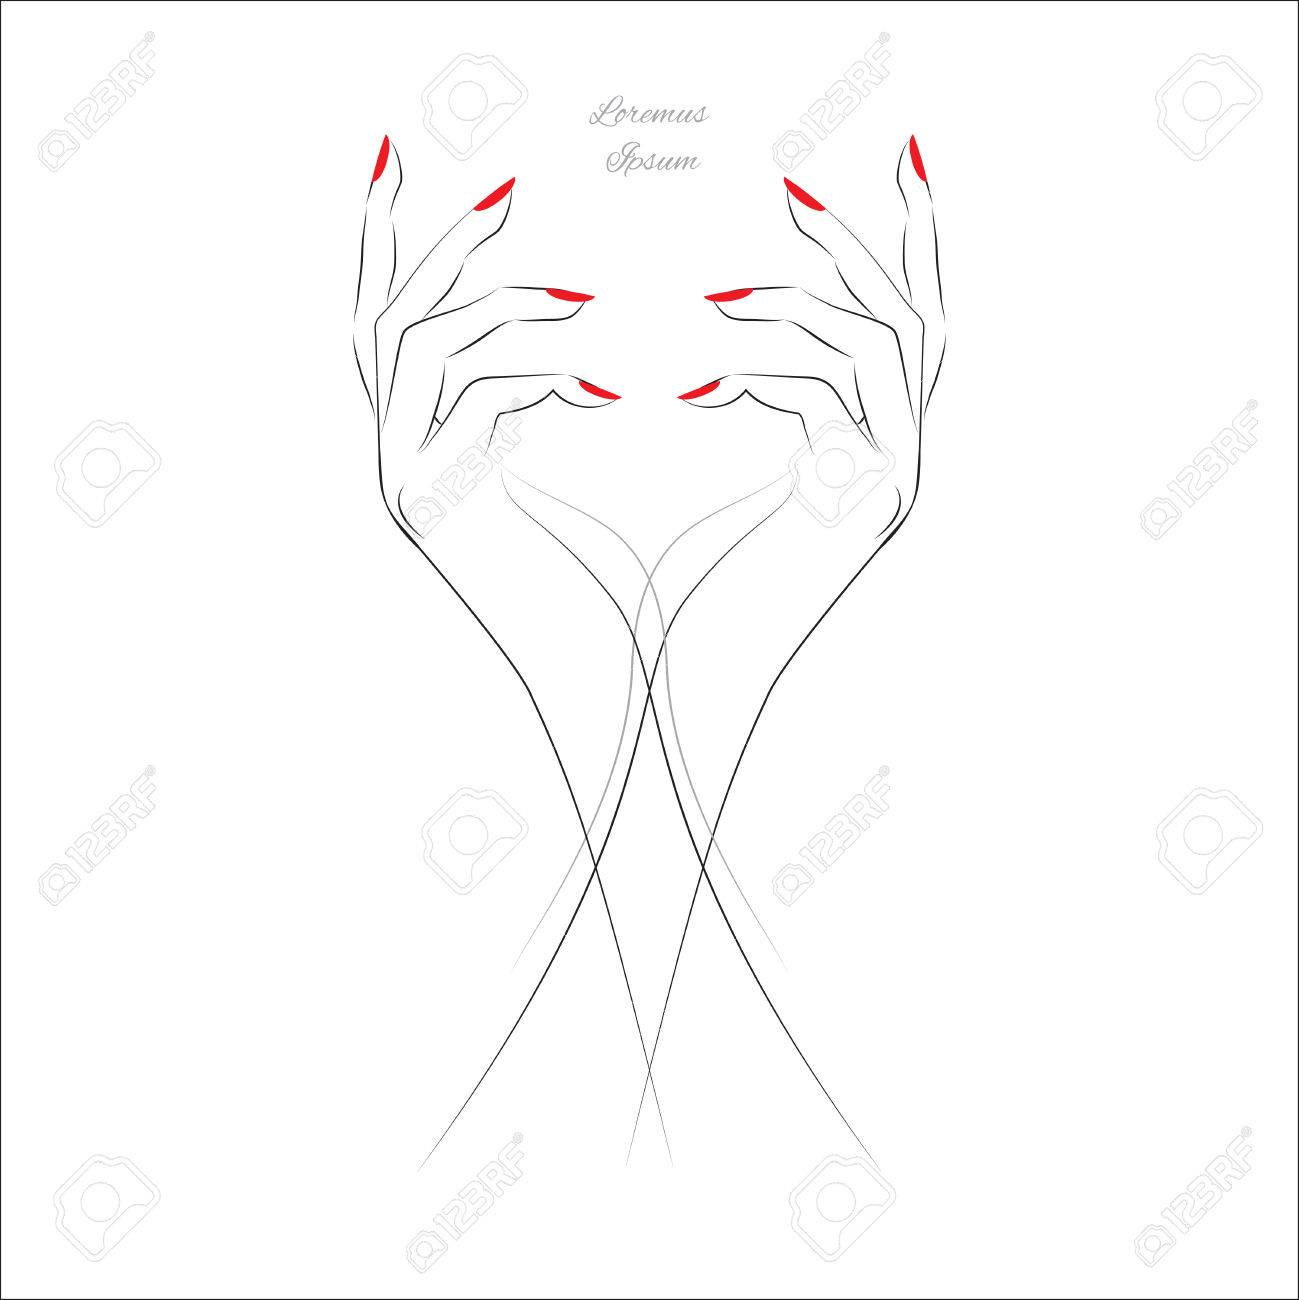 Female hand with painted nails, red manicure symbol. Vector illustration. - 51823886